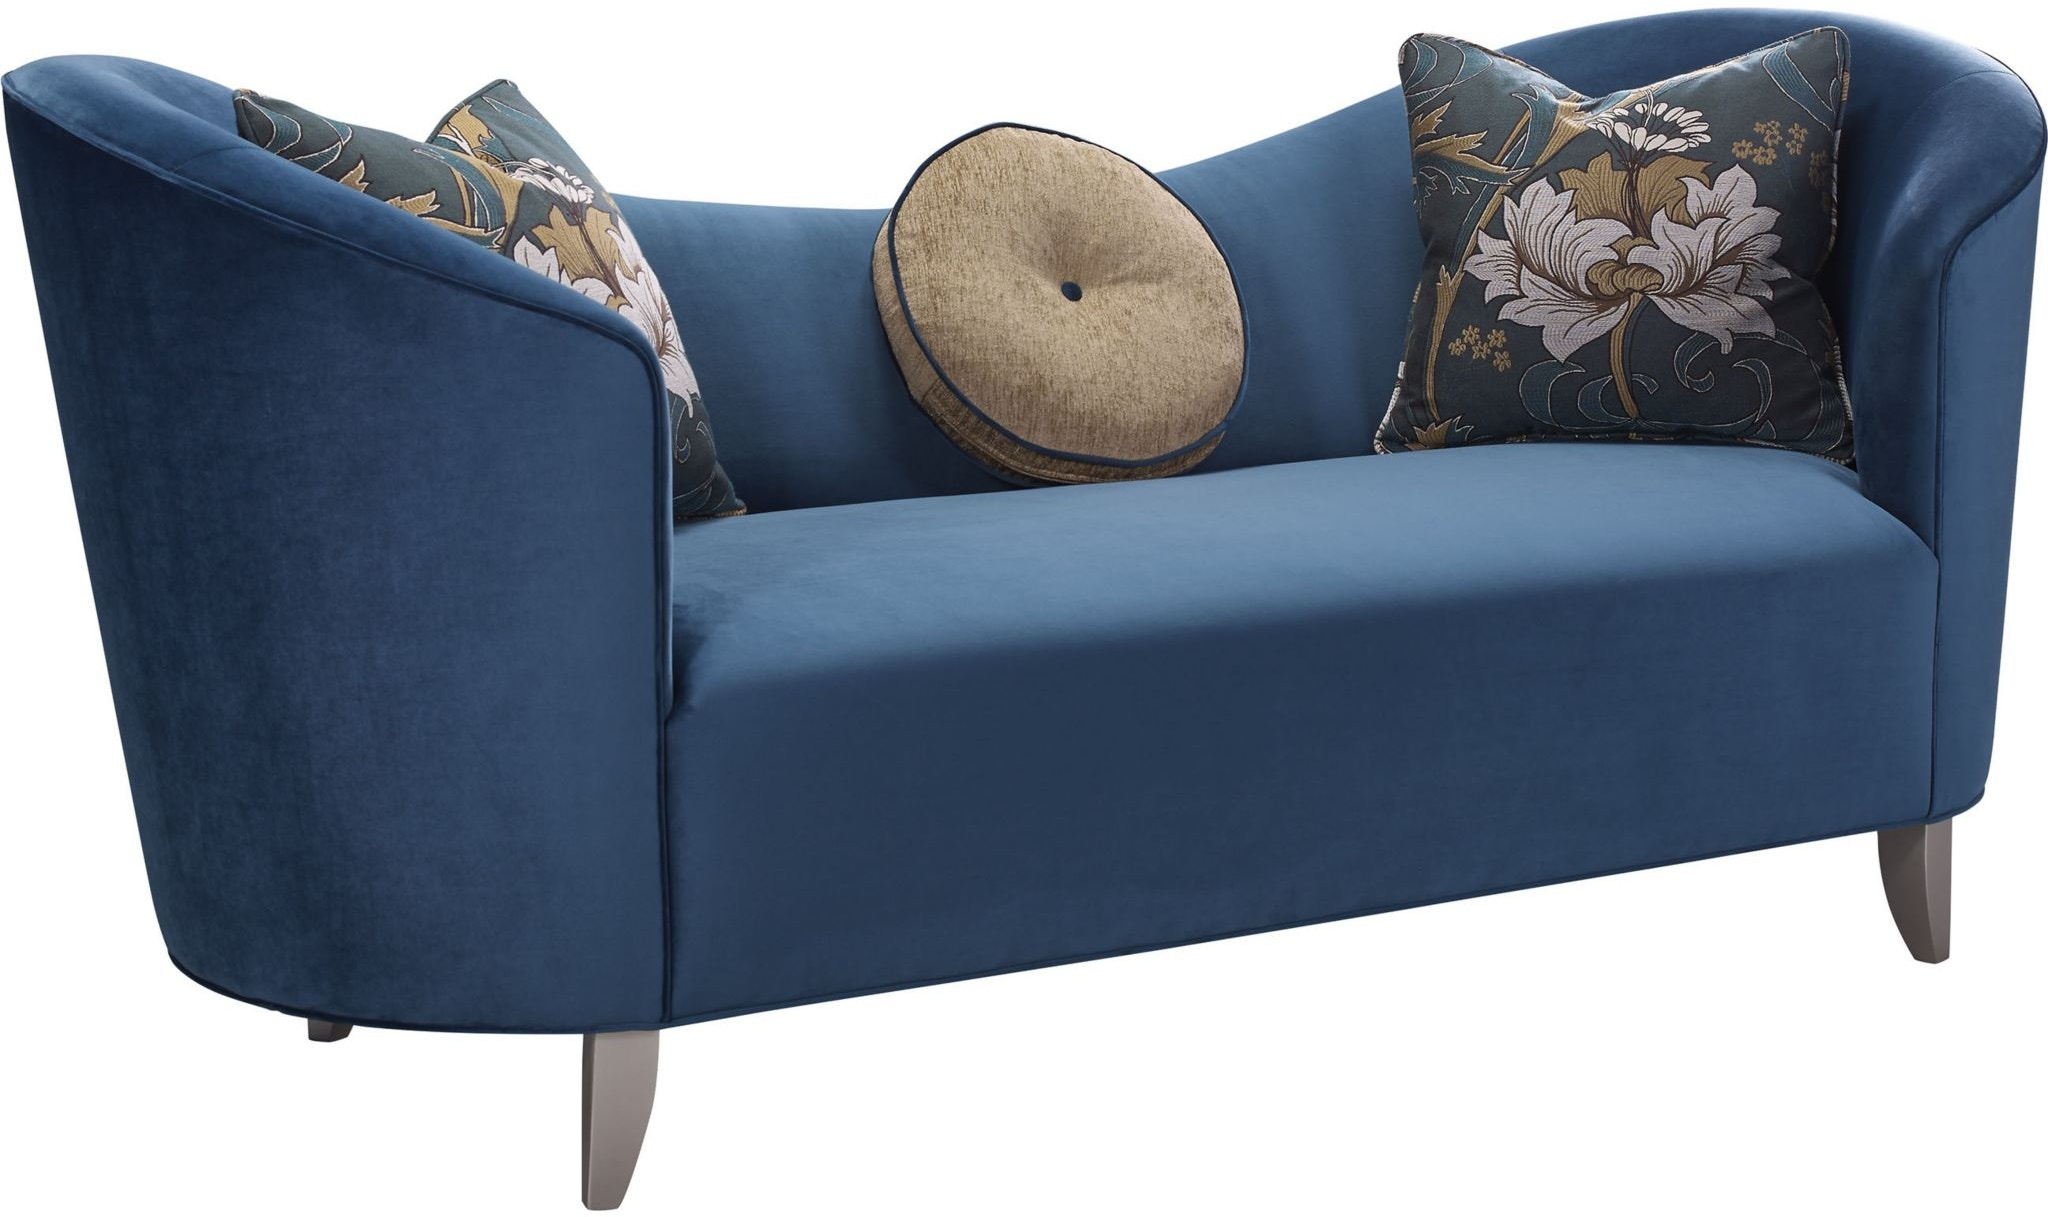 Thomasville Living Room Josephine Sofa 2564 12 Whitley Furniture